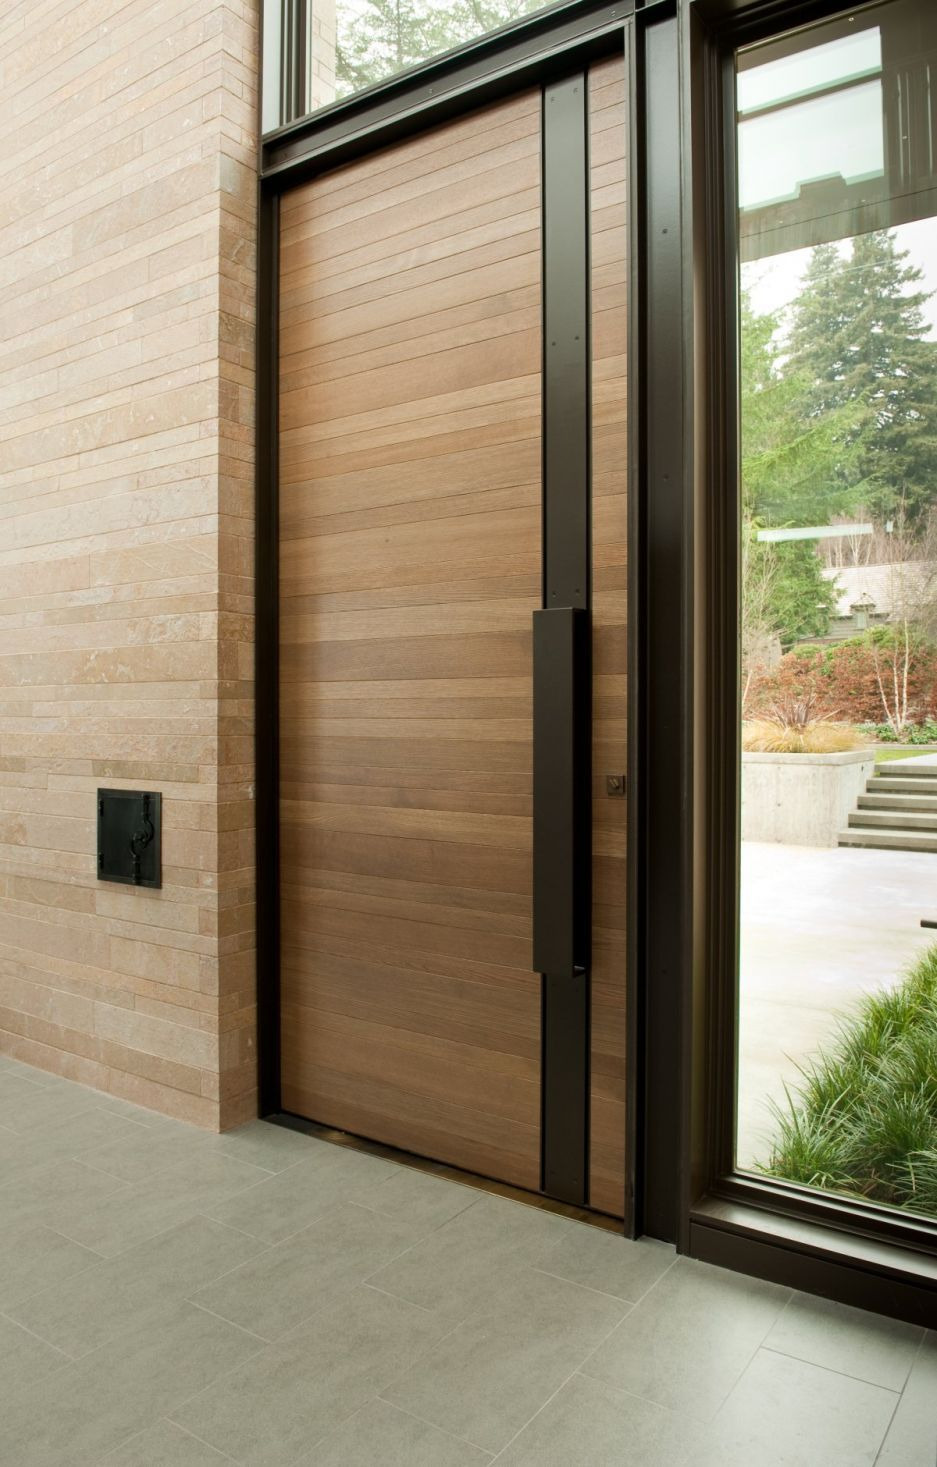 Contemporary Door Designs for Residence Elegant Architecture Contemporary Washington Park Hilltop Residence